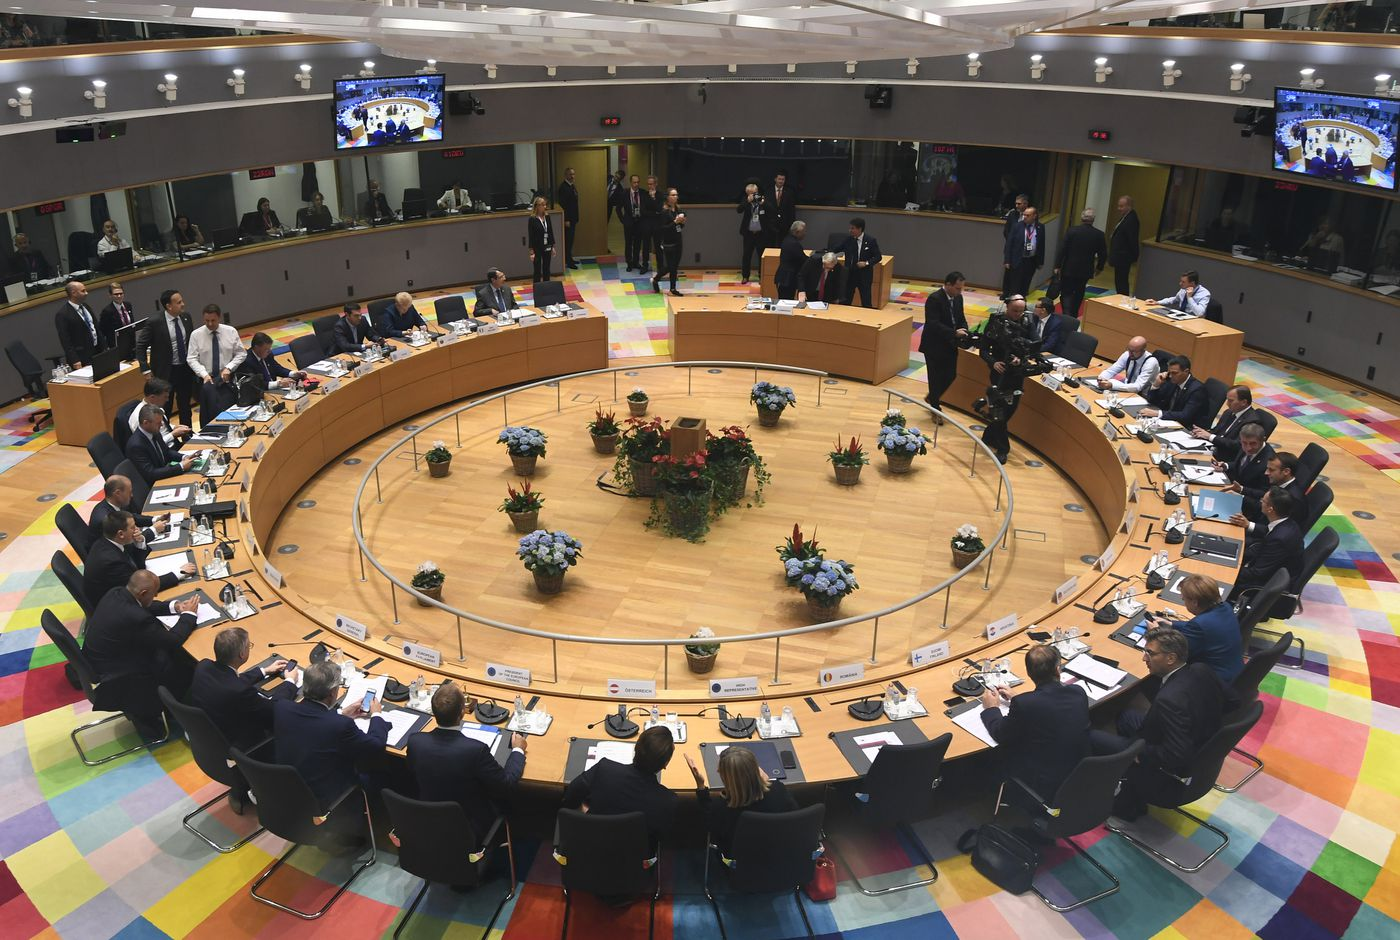 """European Union leaders attend a round table meeting at an EU summit in Brussels, Wednesday, Oct. 17, 2018. European Union leaders are converging on Brussels for what had been billed as a """"moment of truth"""" Brexit summit but which now holds little promise for a breakthrough. (Piroschka van de Wouw, Pool Photo via AP)"""